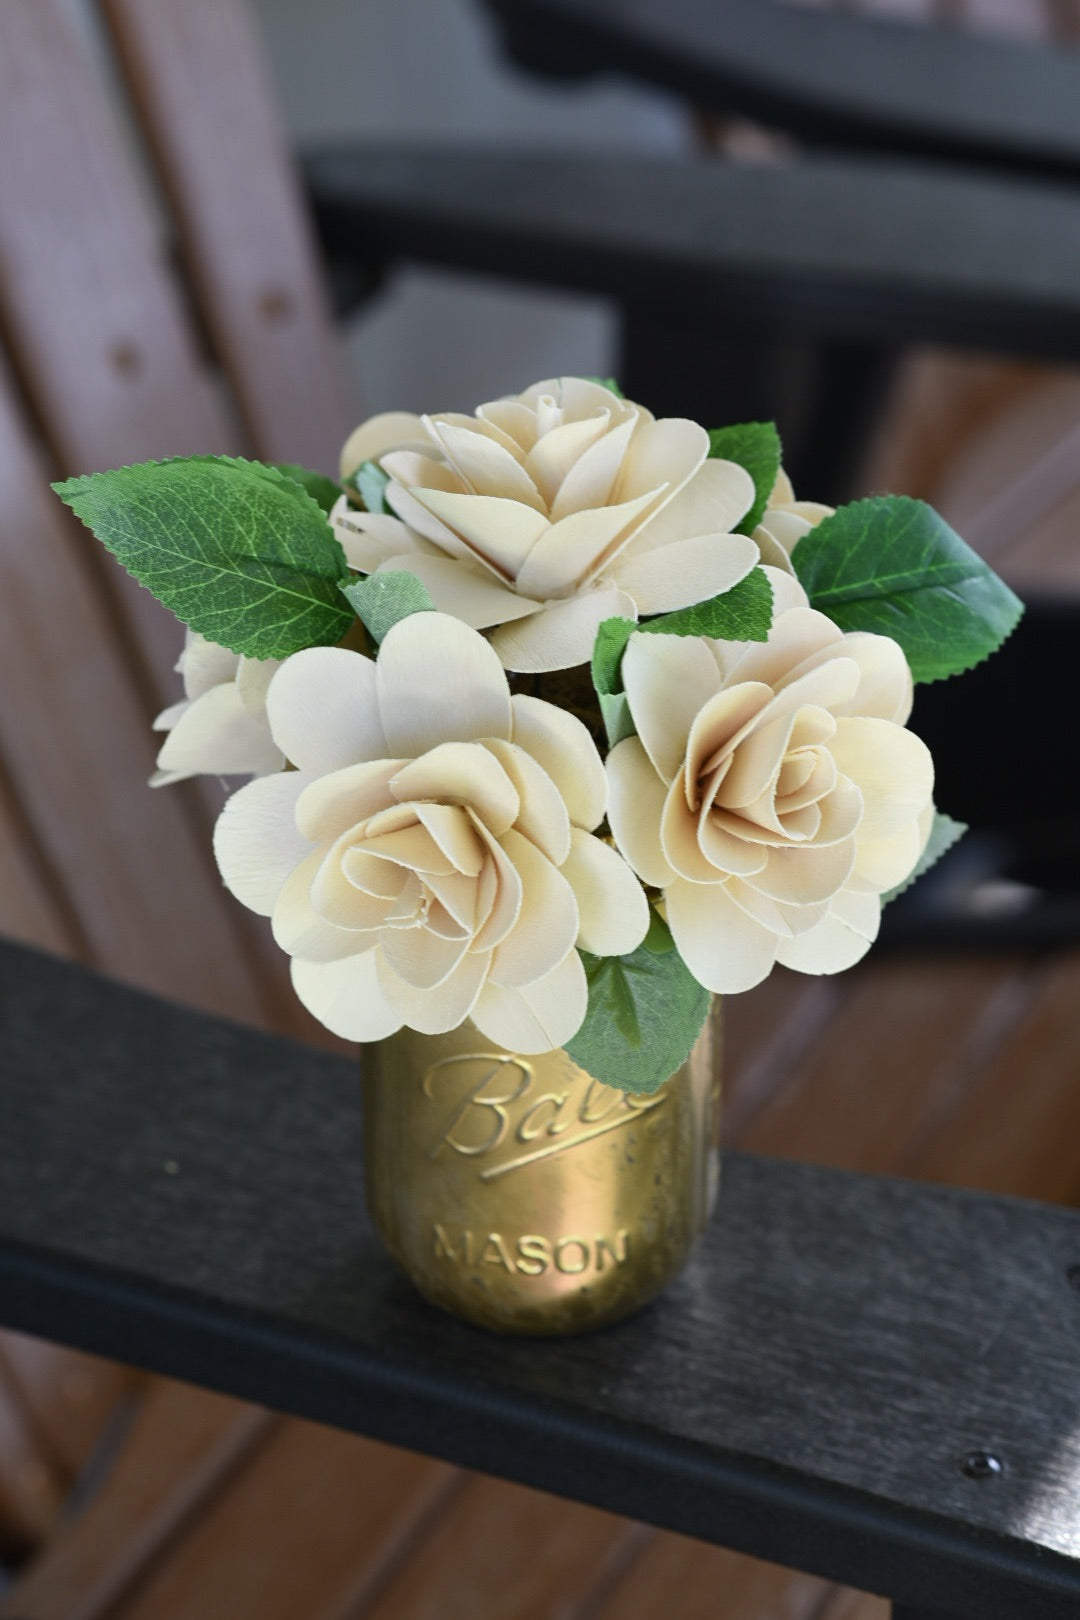 Carved Wood Flowers in Gold Mason Jar